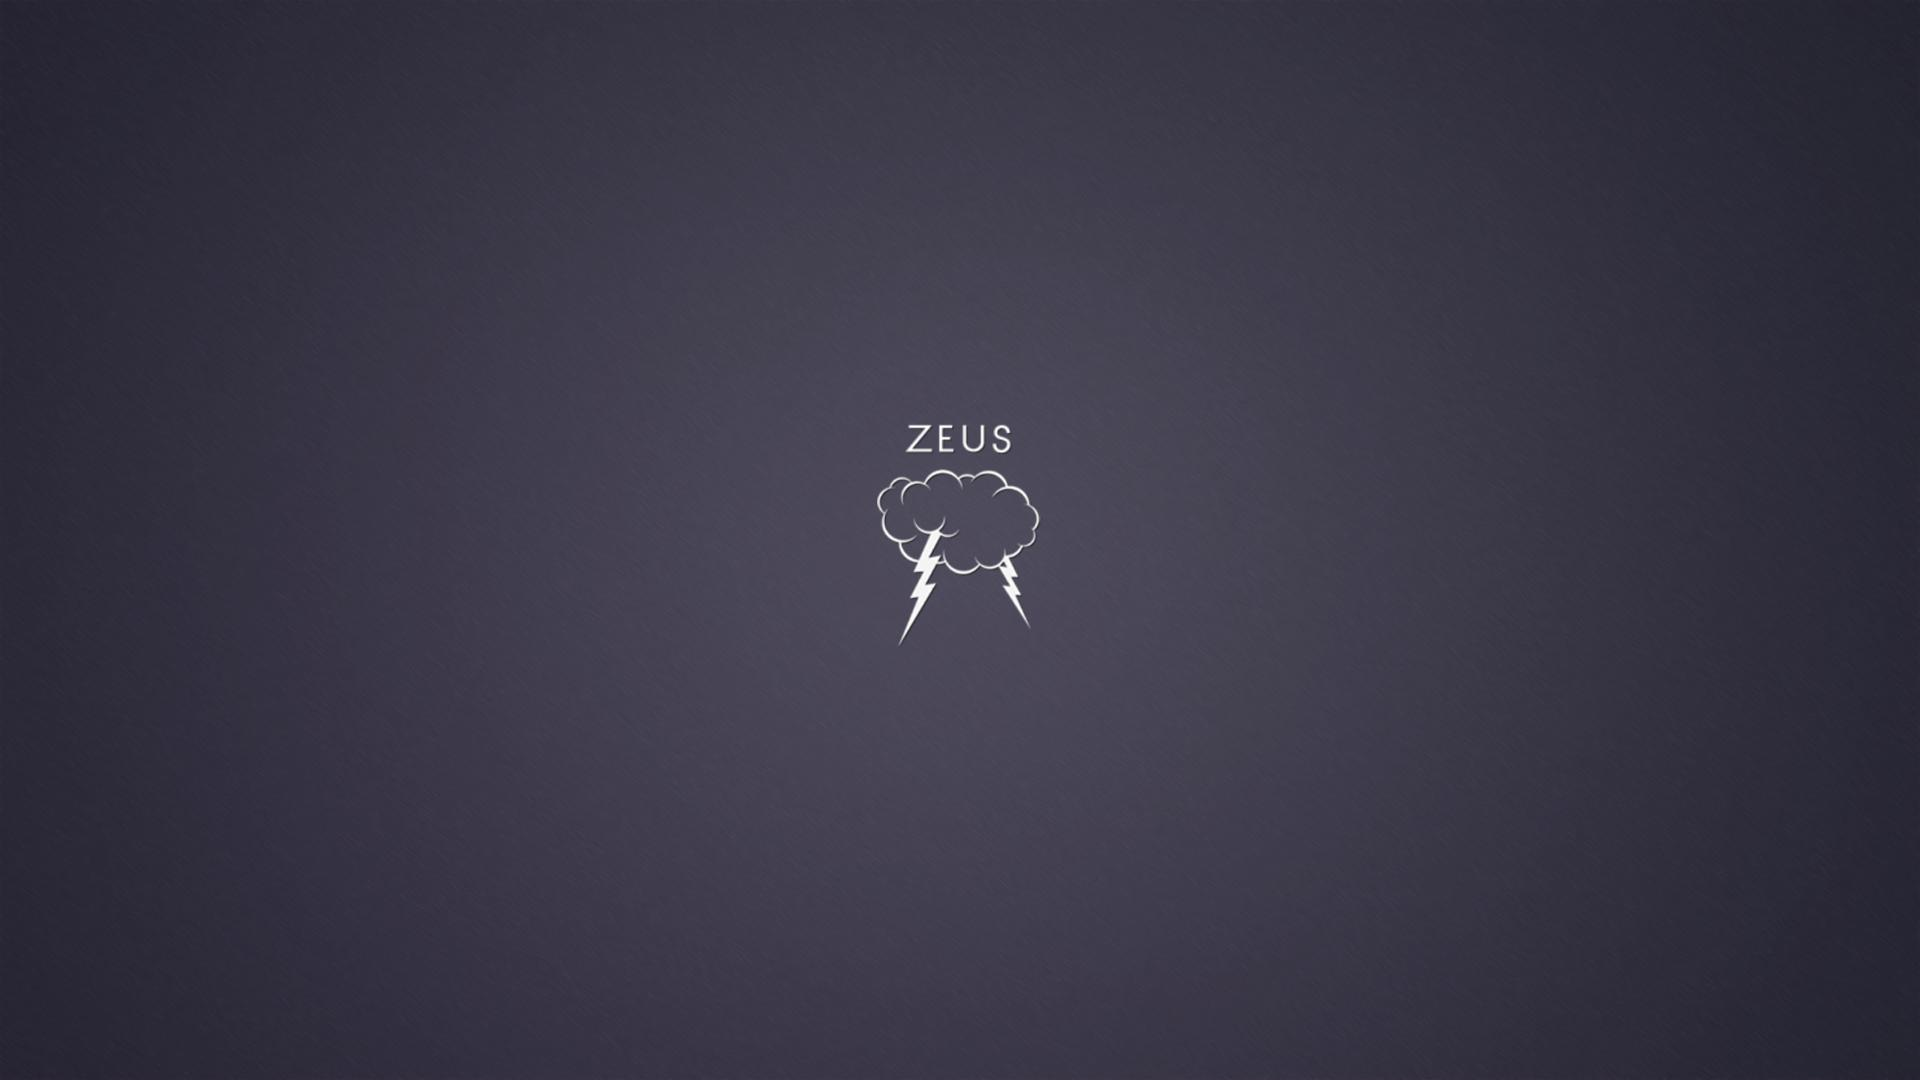 Zevs wallpapers of desktop